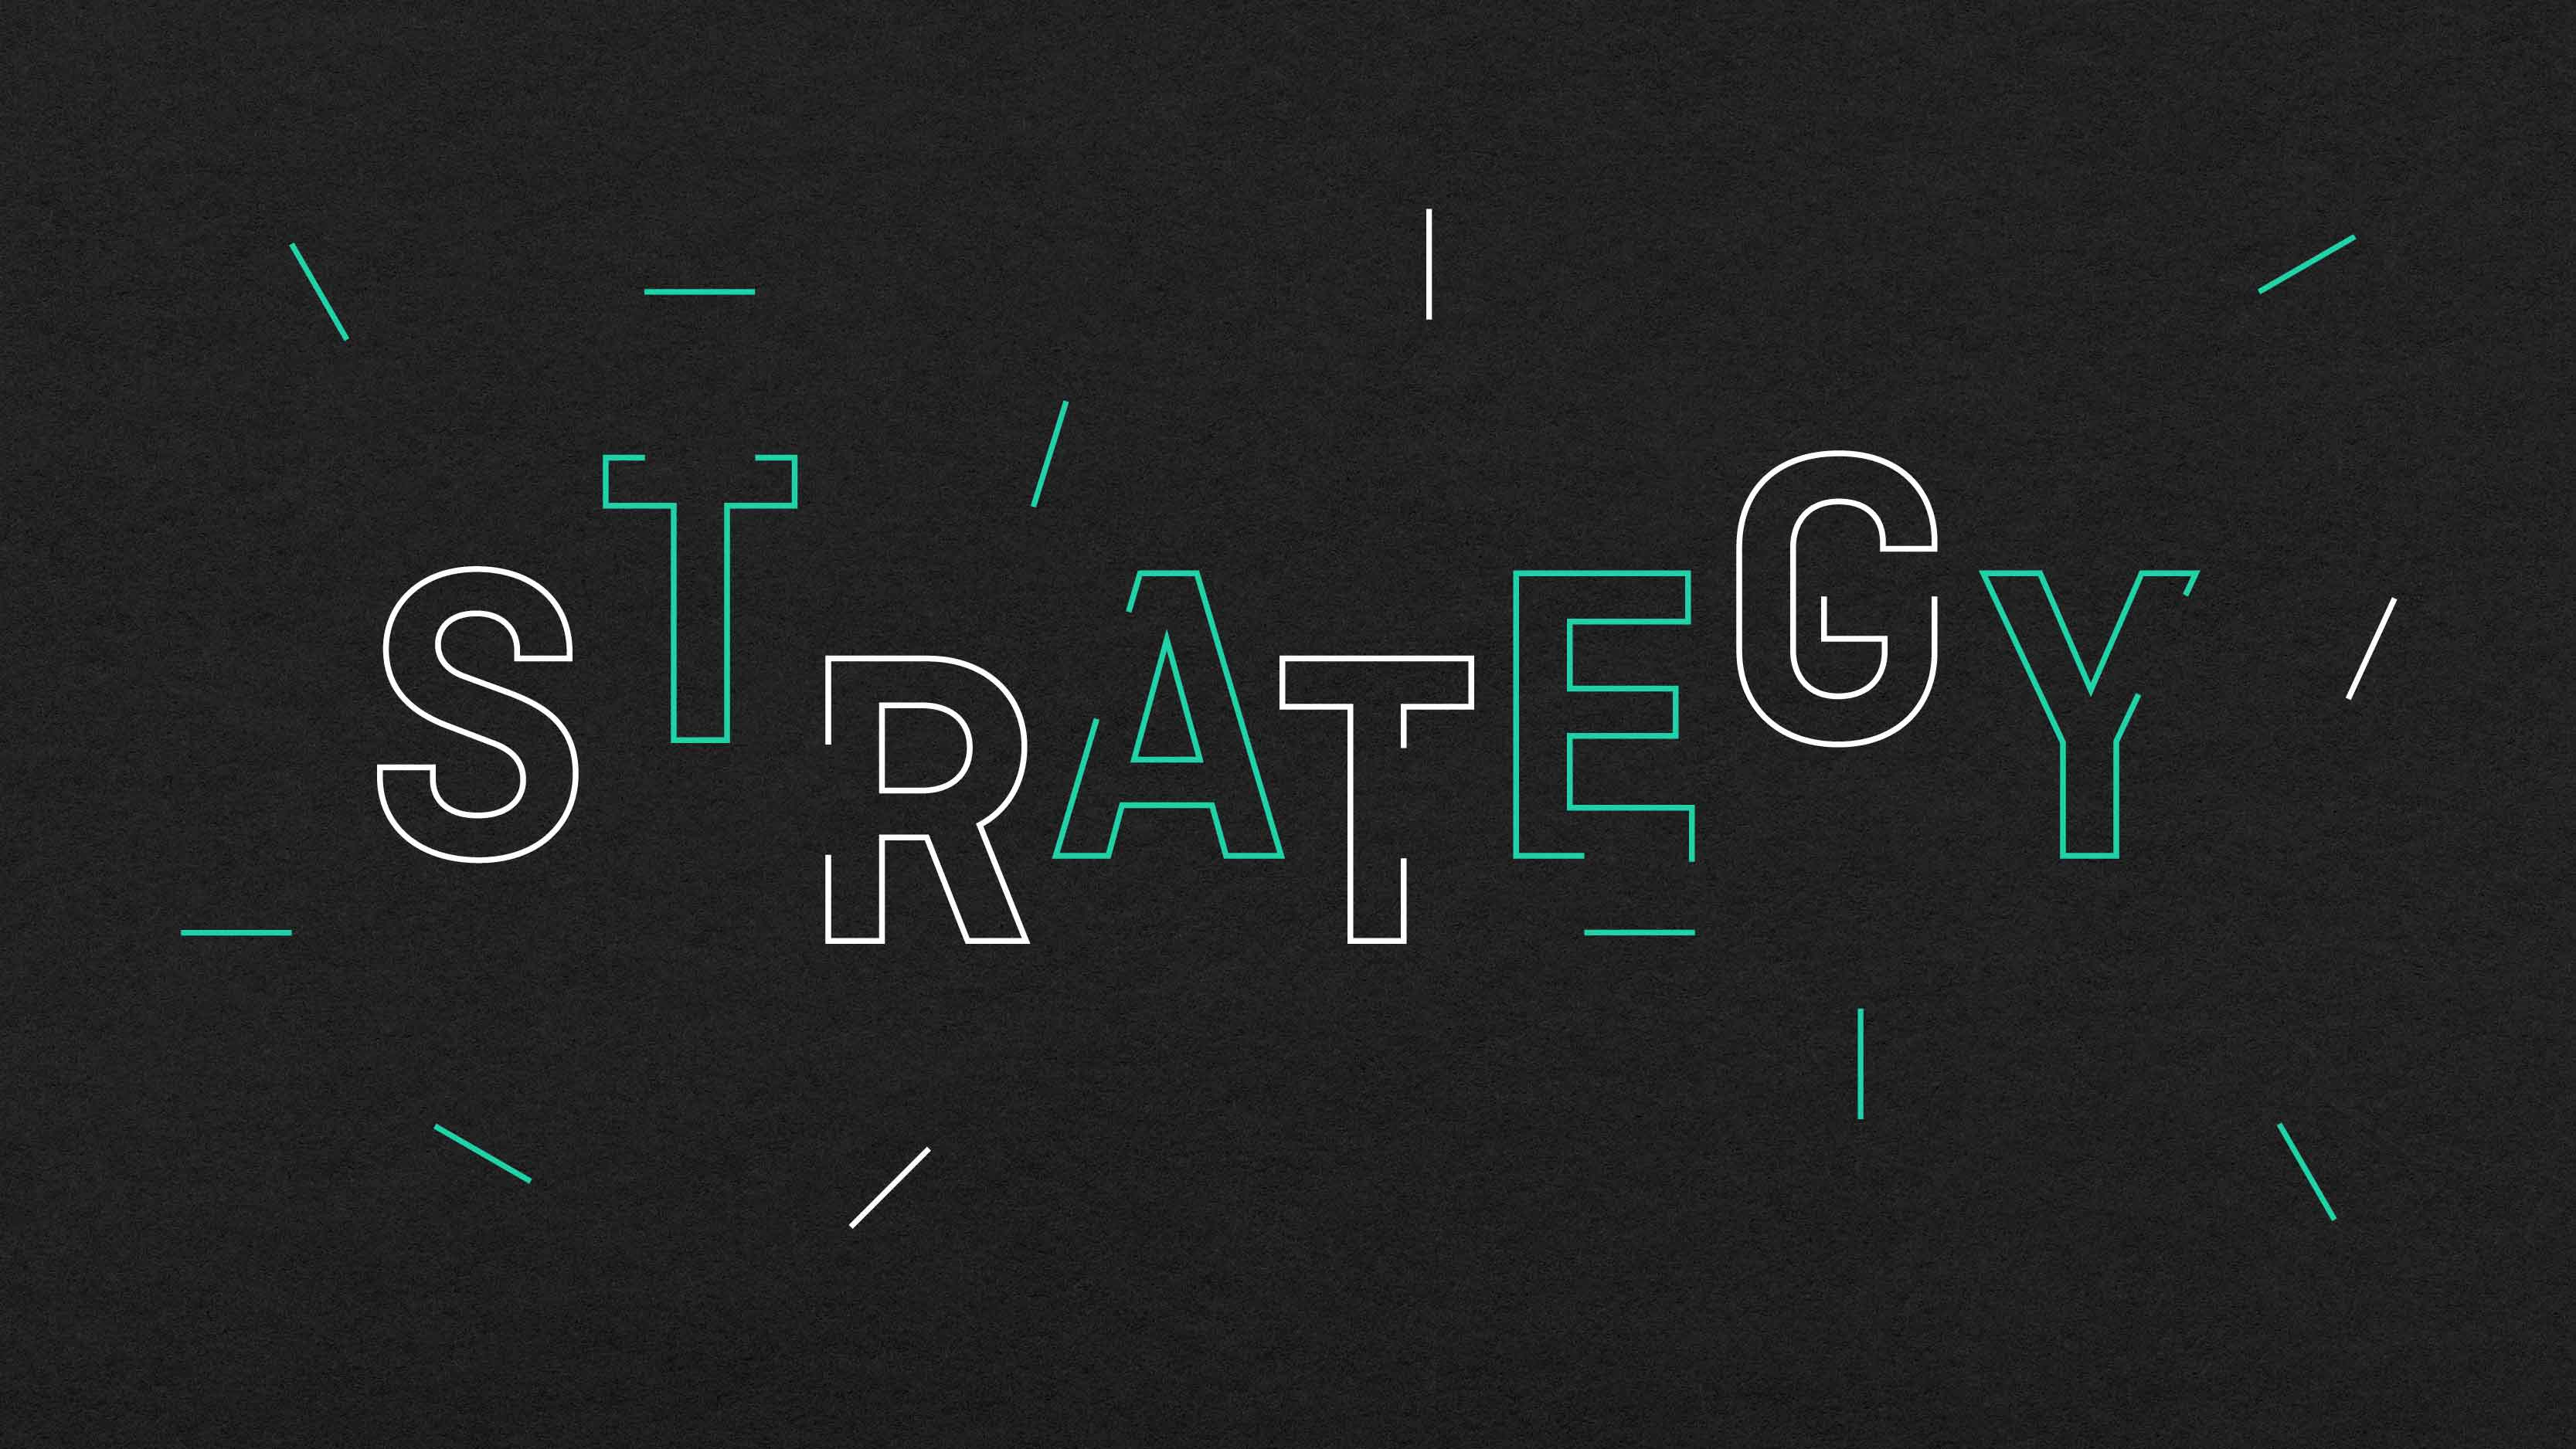 Brand strategy and creative design graphic.